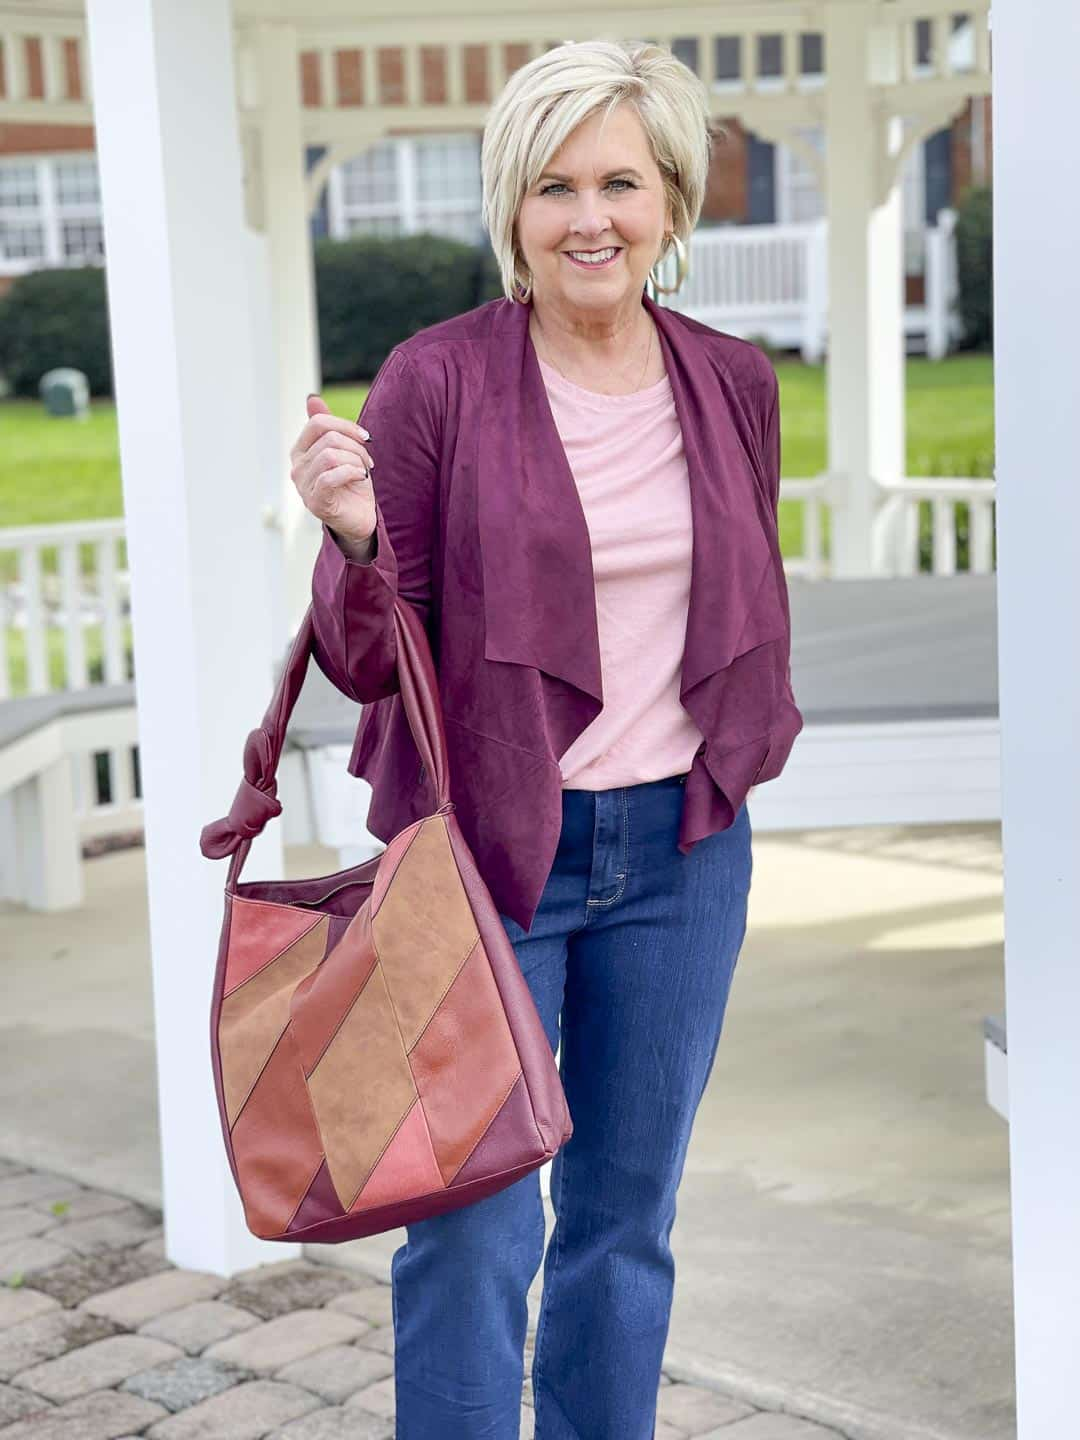 Over 40 Fashion Blogger, Tania Stephens, is showing her recent Walmart haul including this plum jacket, pink tee, and patchwork bag